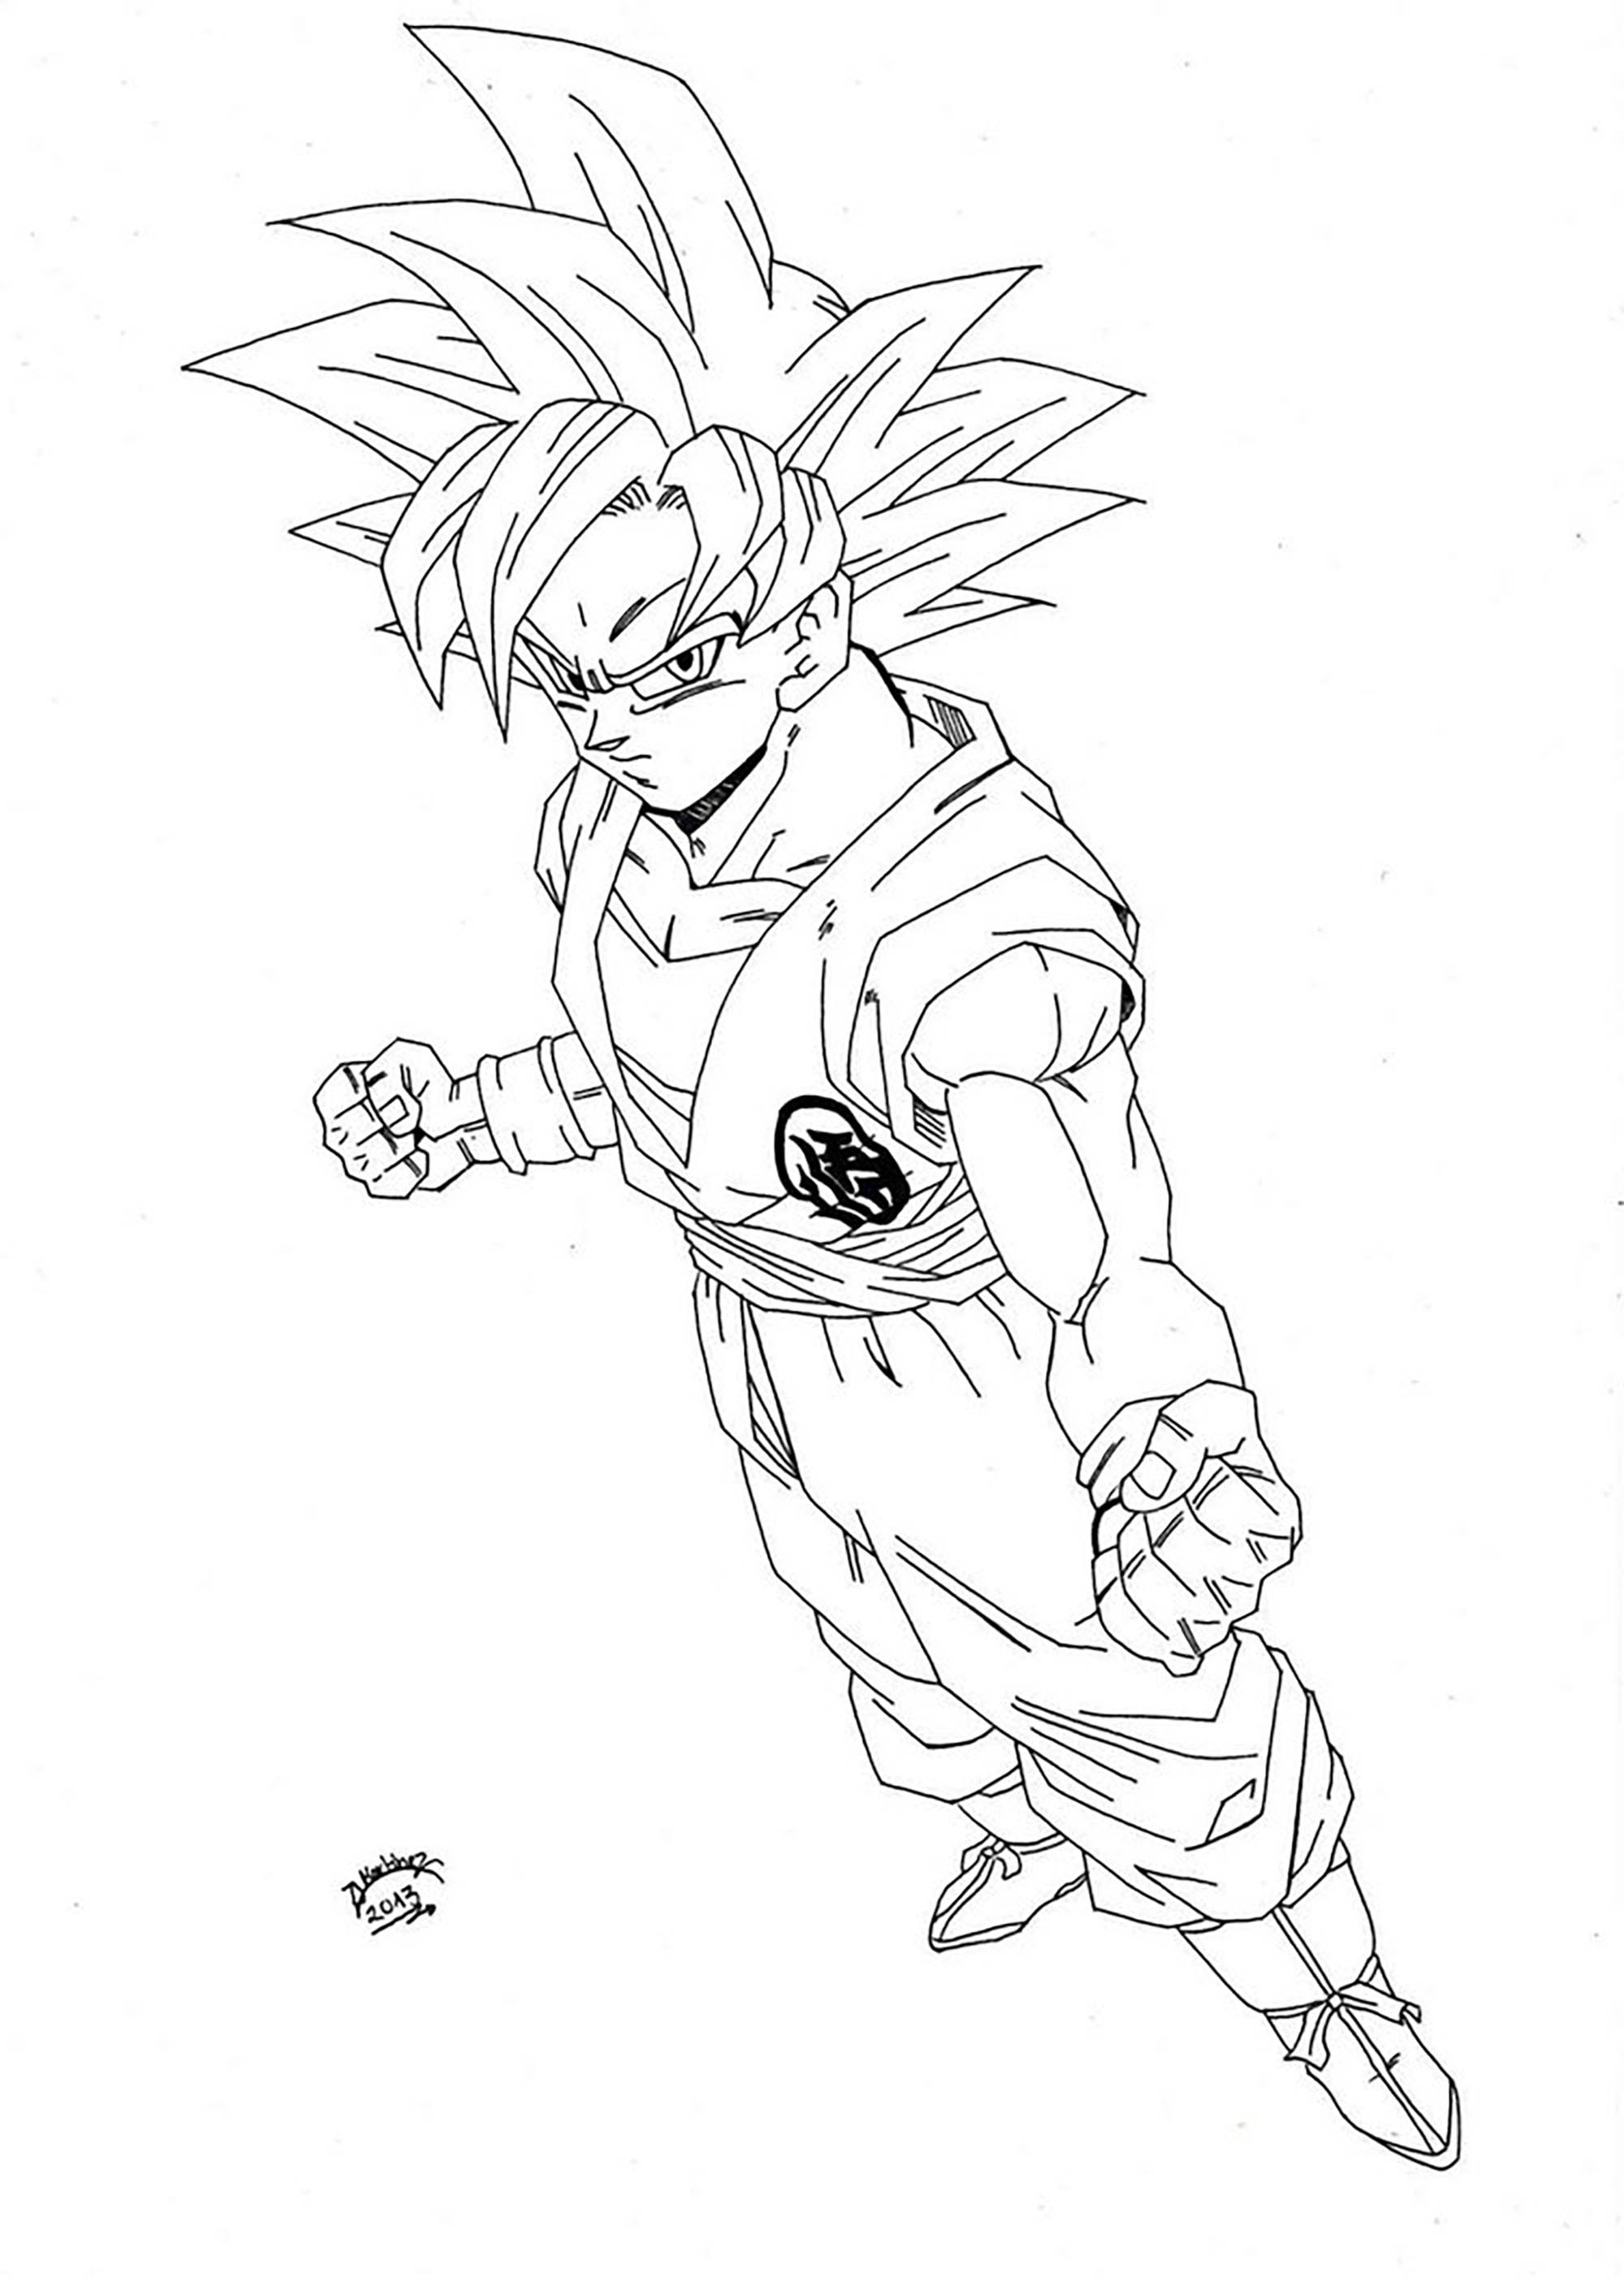 Beautiful Dragon Ball Z coloring page to print and color : Songoku